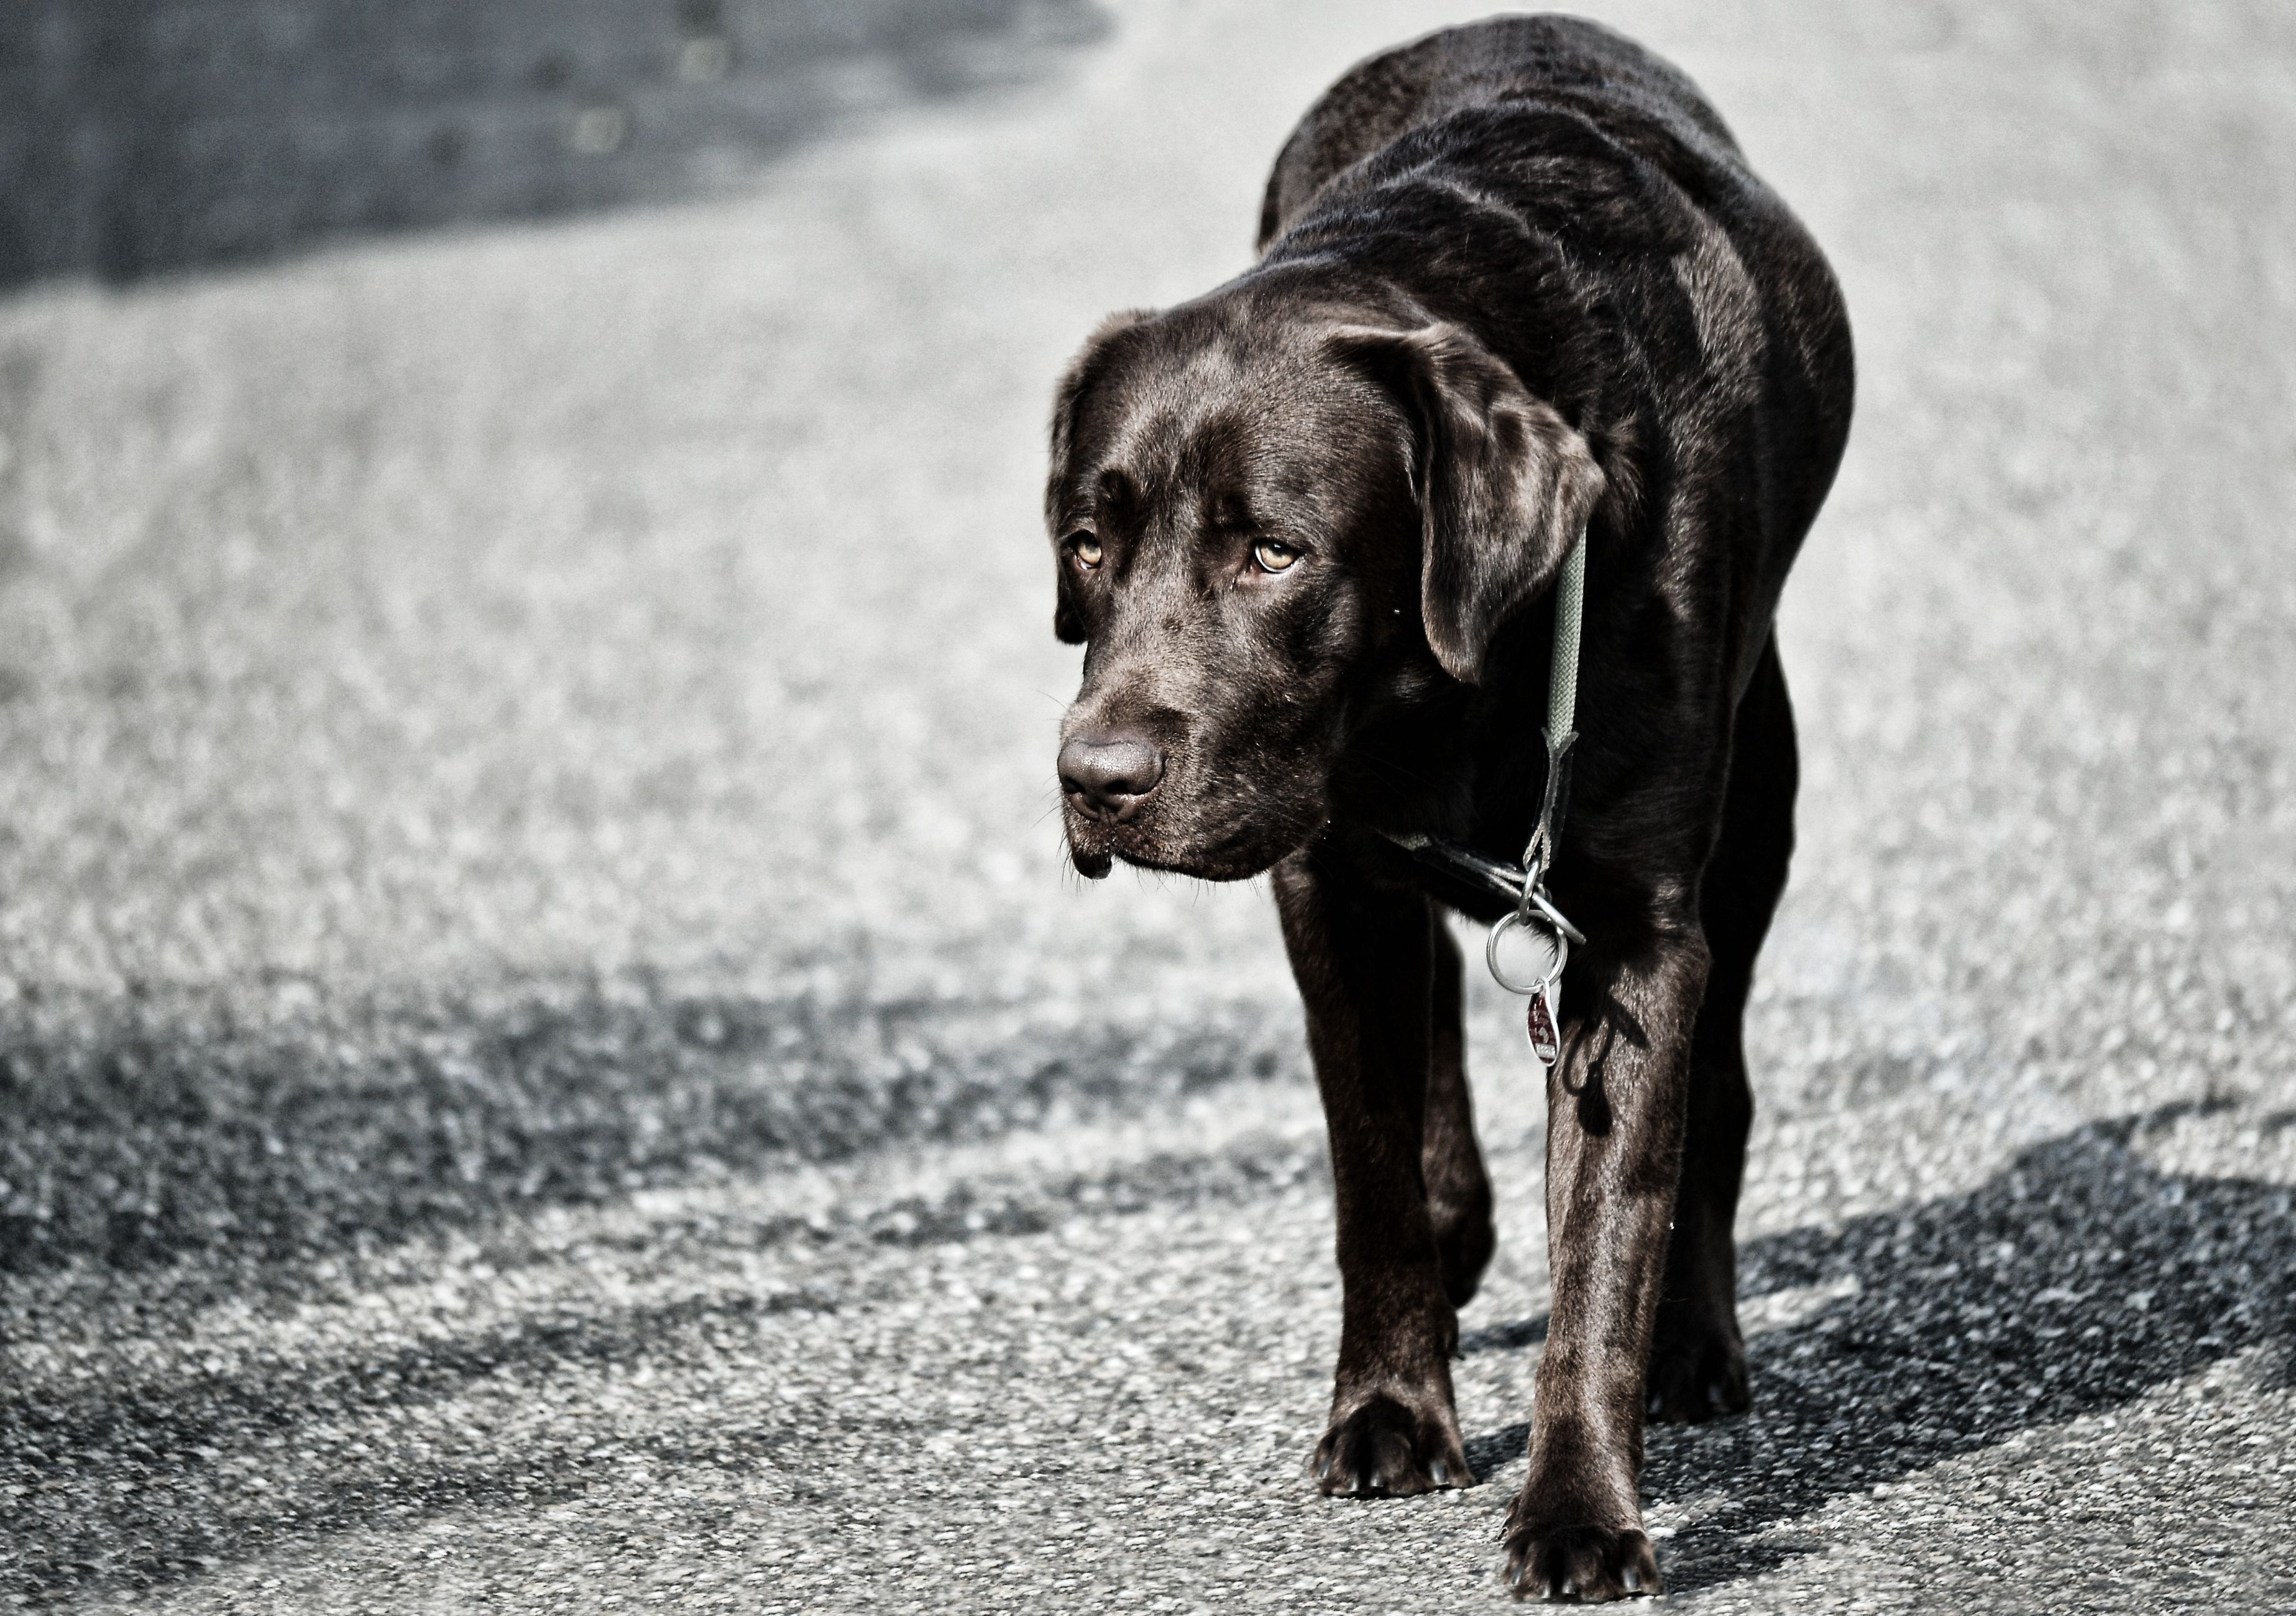 138415 download wallpaper Animals, Labrador, Dog, Stroll screensavers and pictures for free